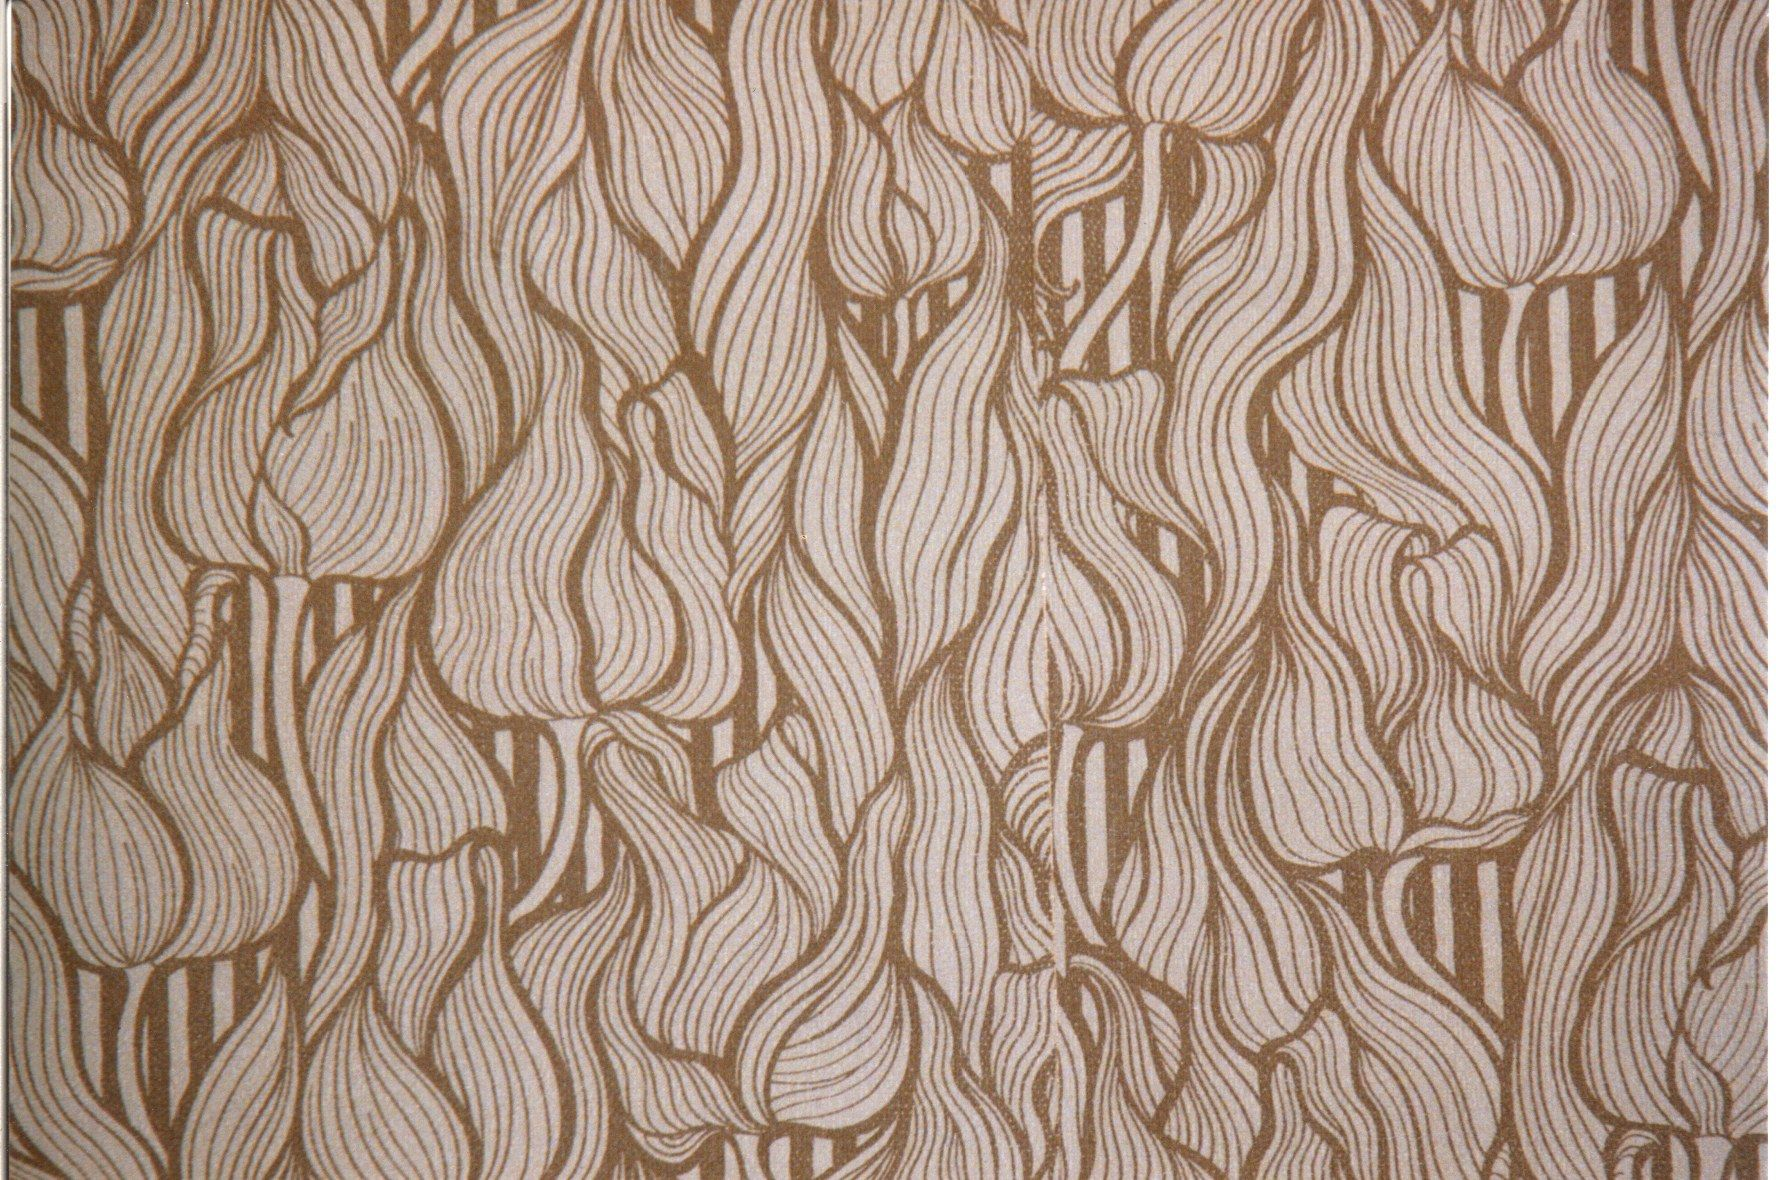 Wallpaper Home Wallpaper Textured Wallpaper Embossed Wallpaper